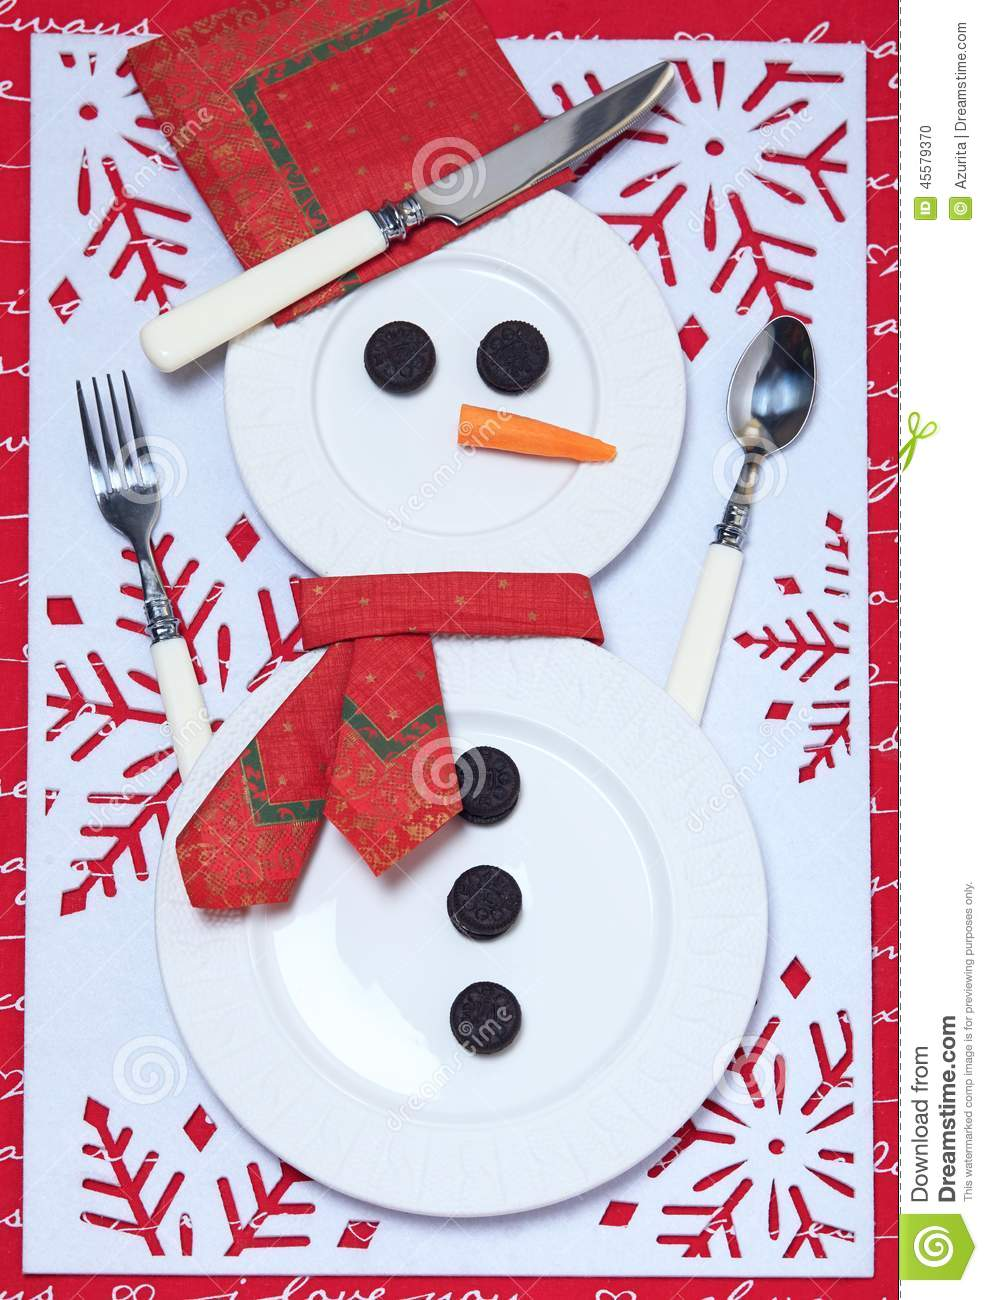 Festive Table Setting For Christmas Stock Photo Image  : festive table setting christmas snowman 45579370 from dreamstime.com size 988 x 1300 jpeg 149kB